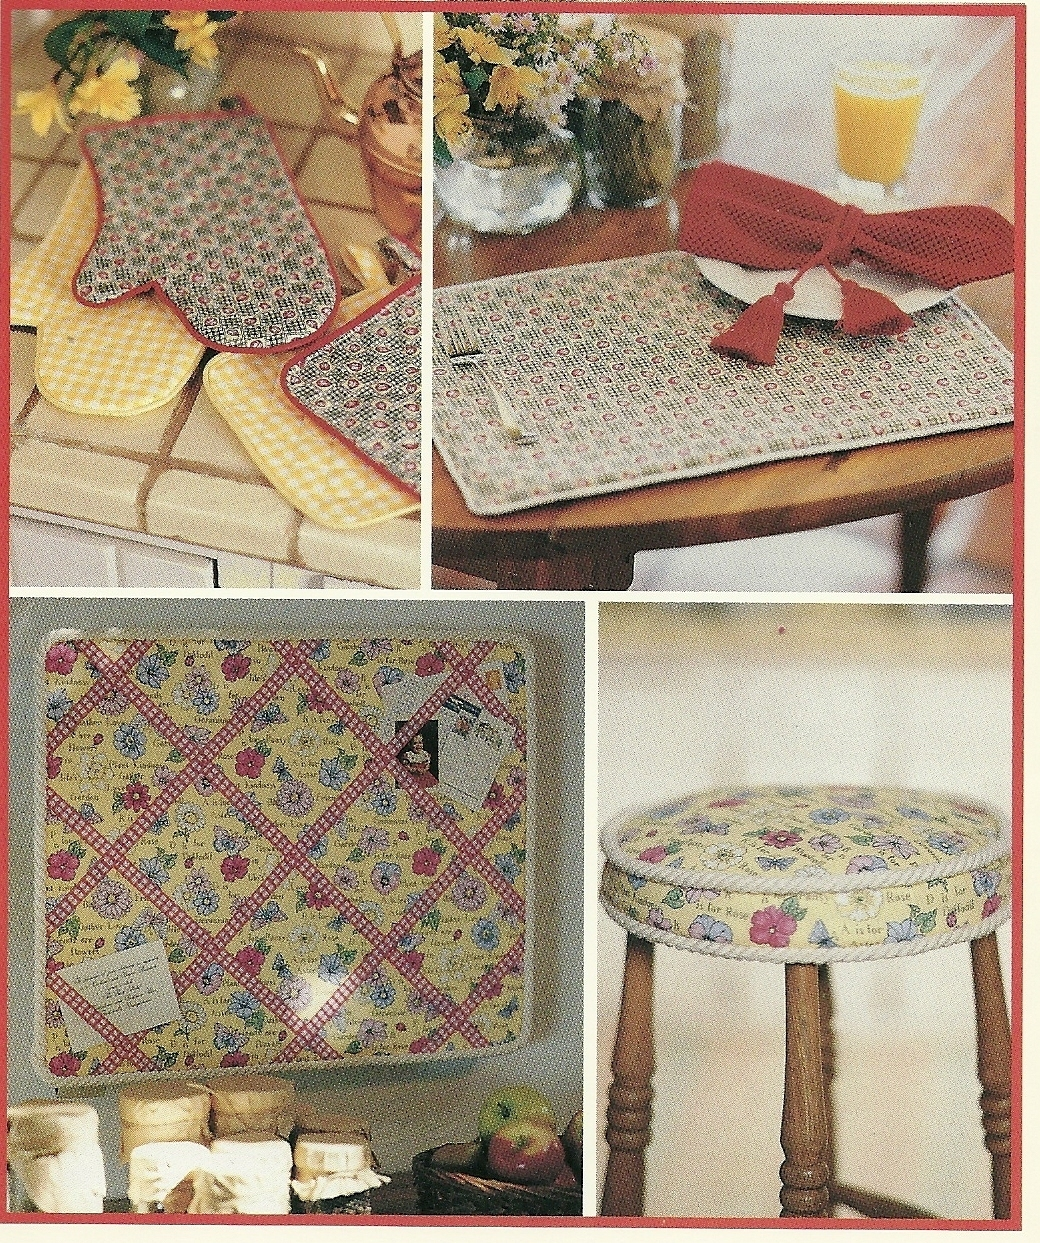 Home Decor Sewing Ideas: McCall's Sewing Pattern 654 Home Decor Kitchen Essentials